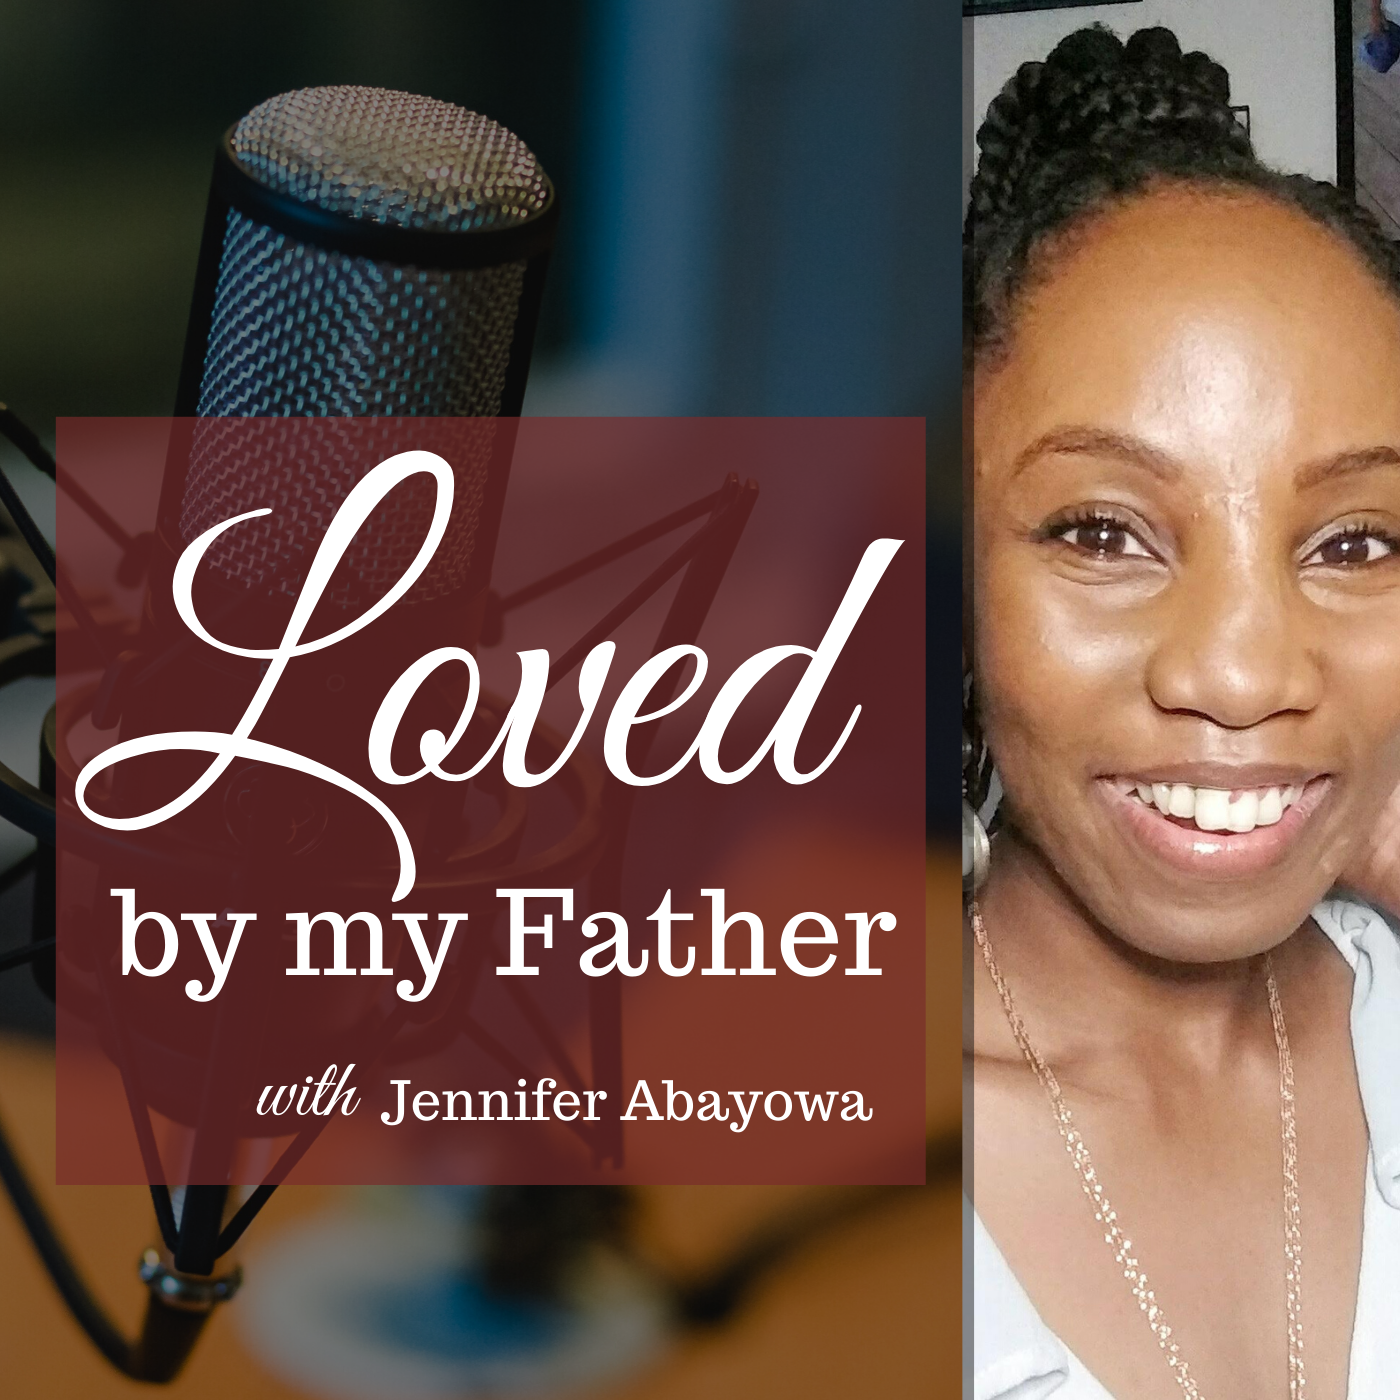 Listen to the Loved by my Father Podcasts